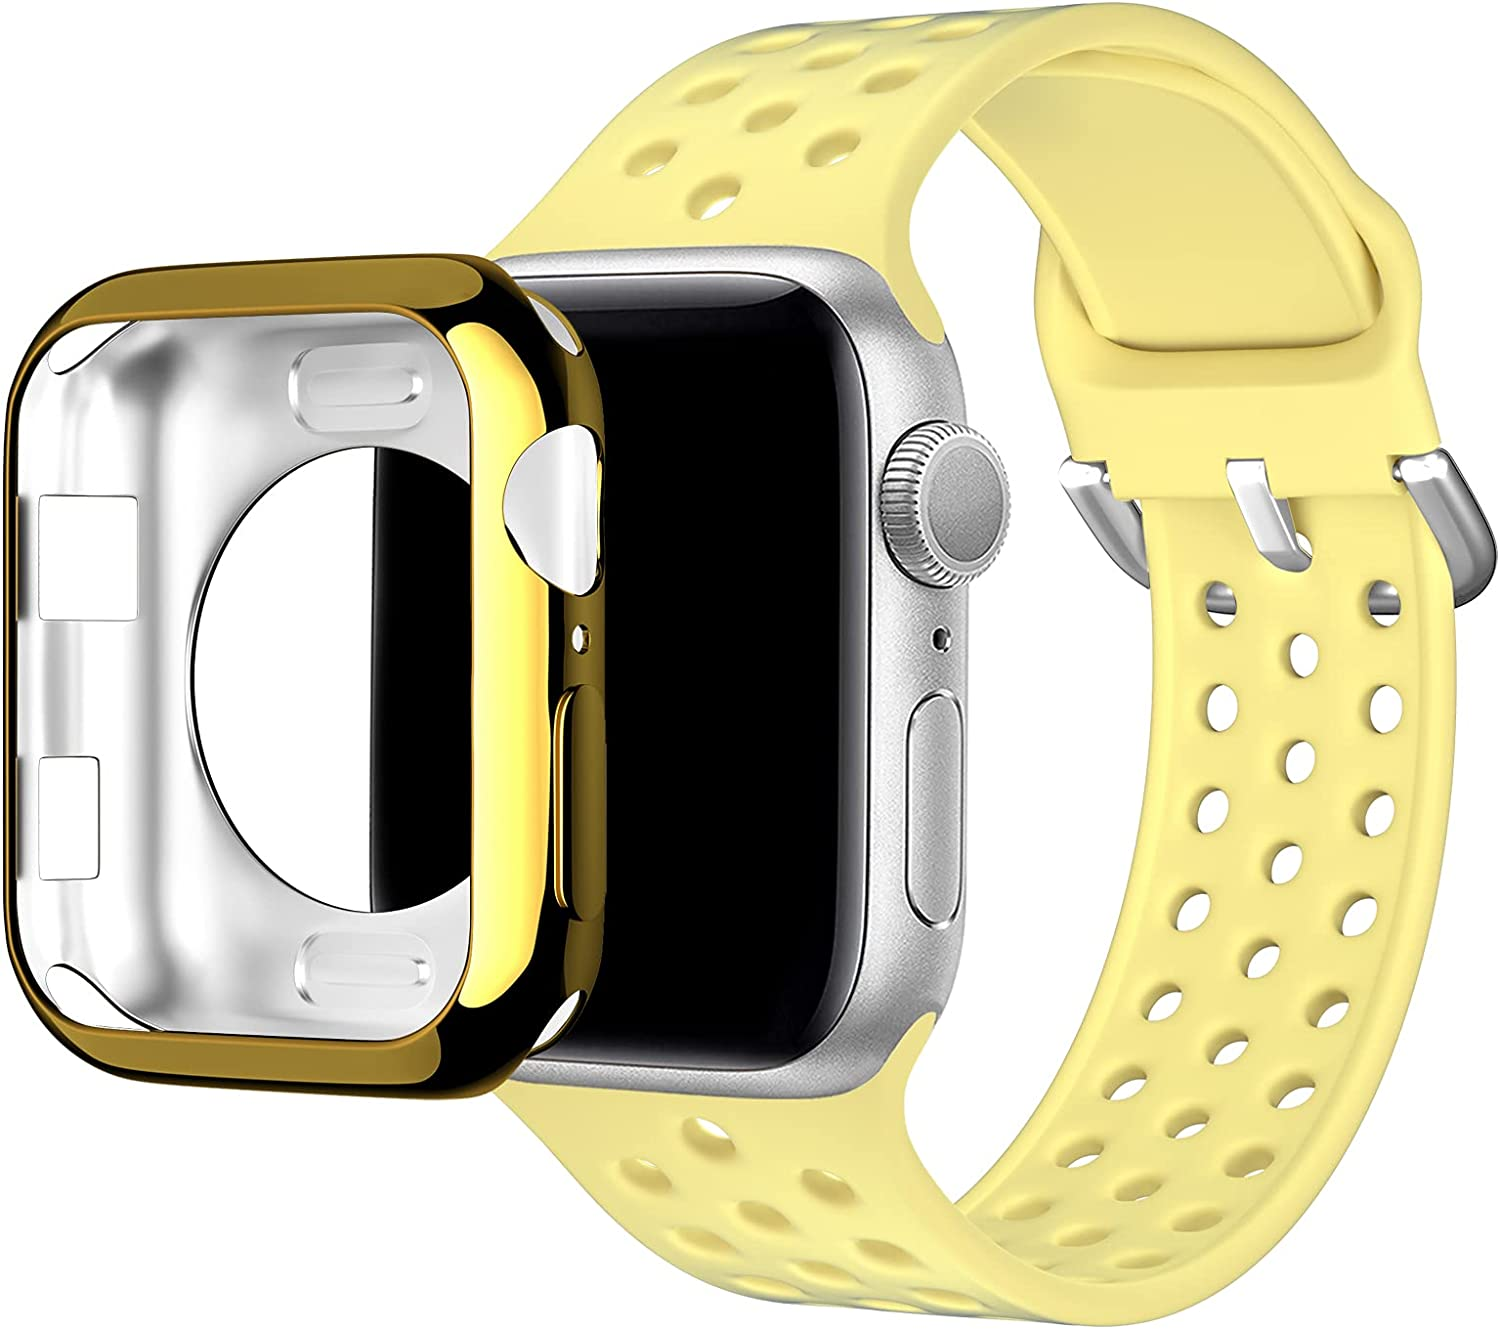 Huishang Compatible for Apple Watch Band 38mm 40mm 42mm 44mm with Protective Case,Sports Band Women Men Silicone Replacement Wrist Strap for iWatch Series 6 SE 5 4 3 2 1(Yellow,44mm)